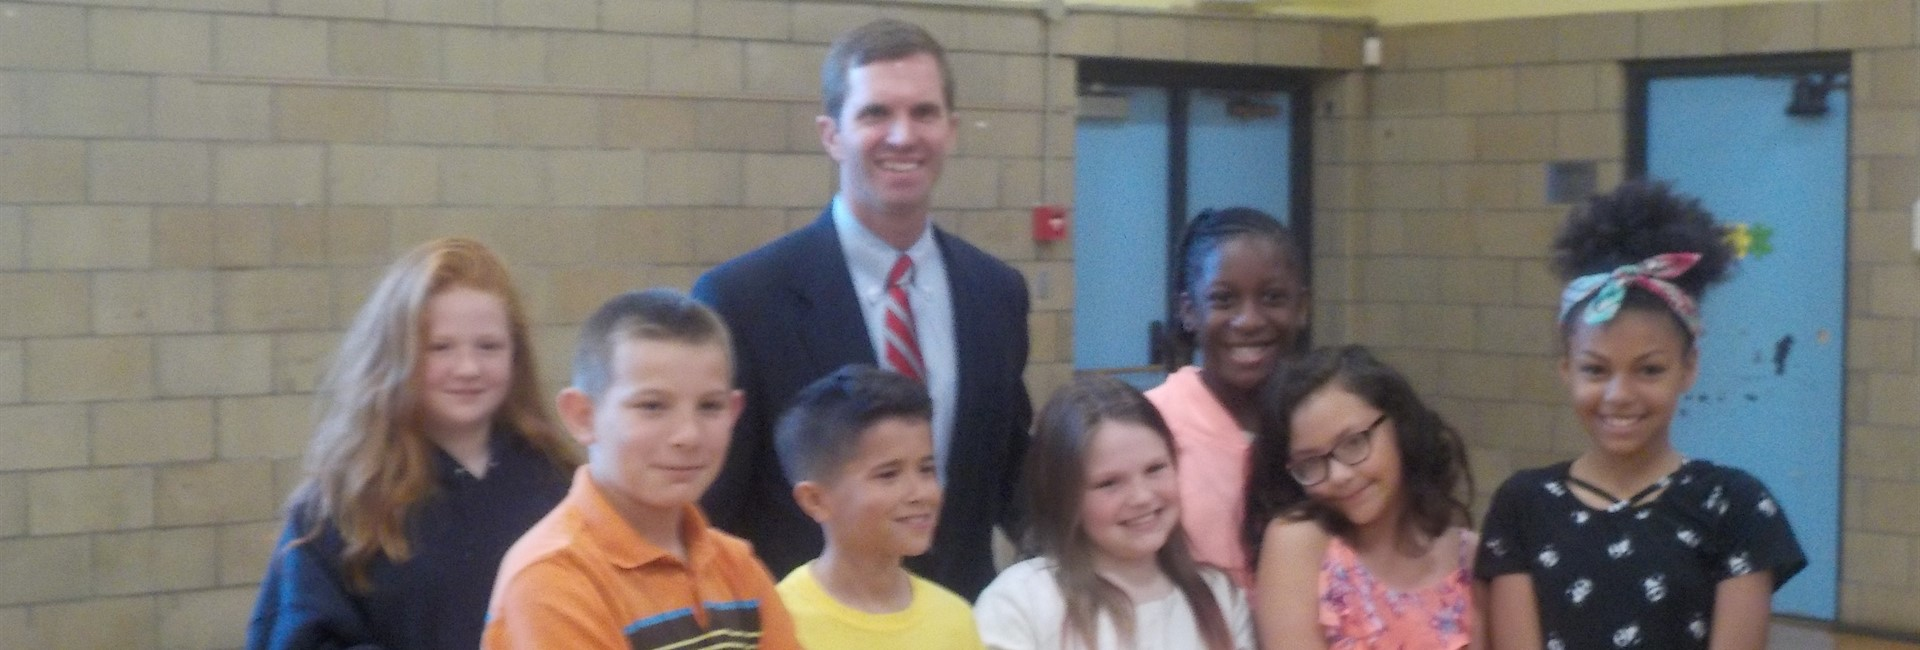 Students take a photo with Kentucky Attorney General Andy Beshear